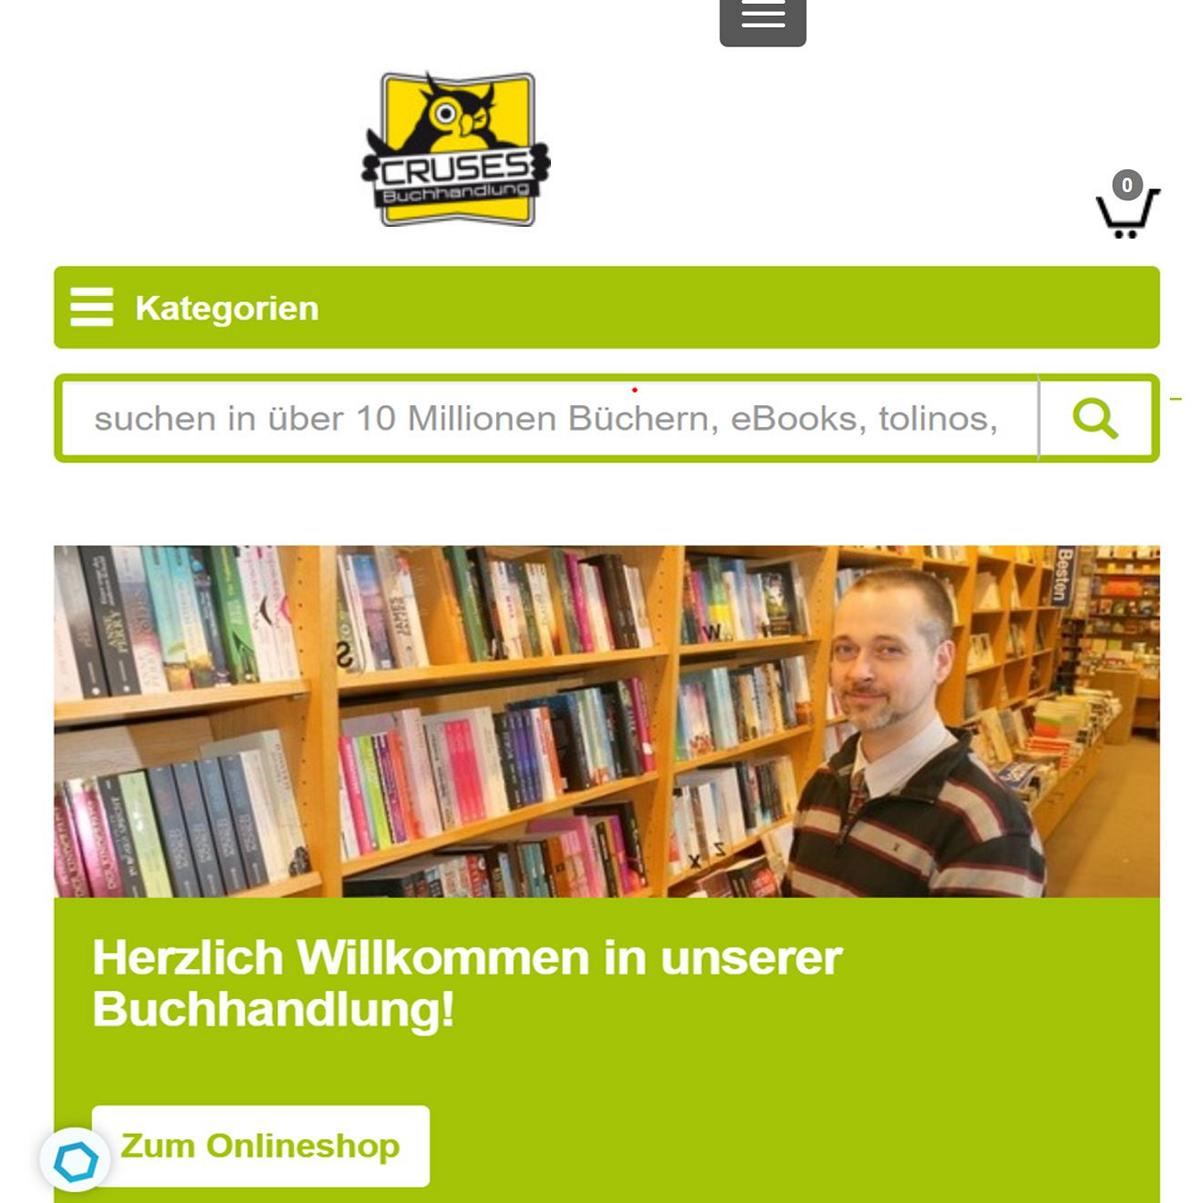 Style Hannover Cruses Buchhandlung Online Shop B - CRUSES Buchhandlung - ONLINE Shop